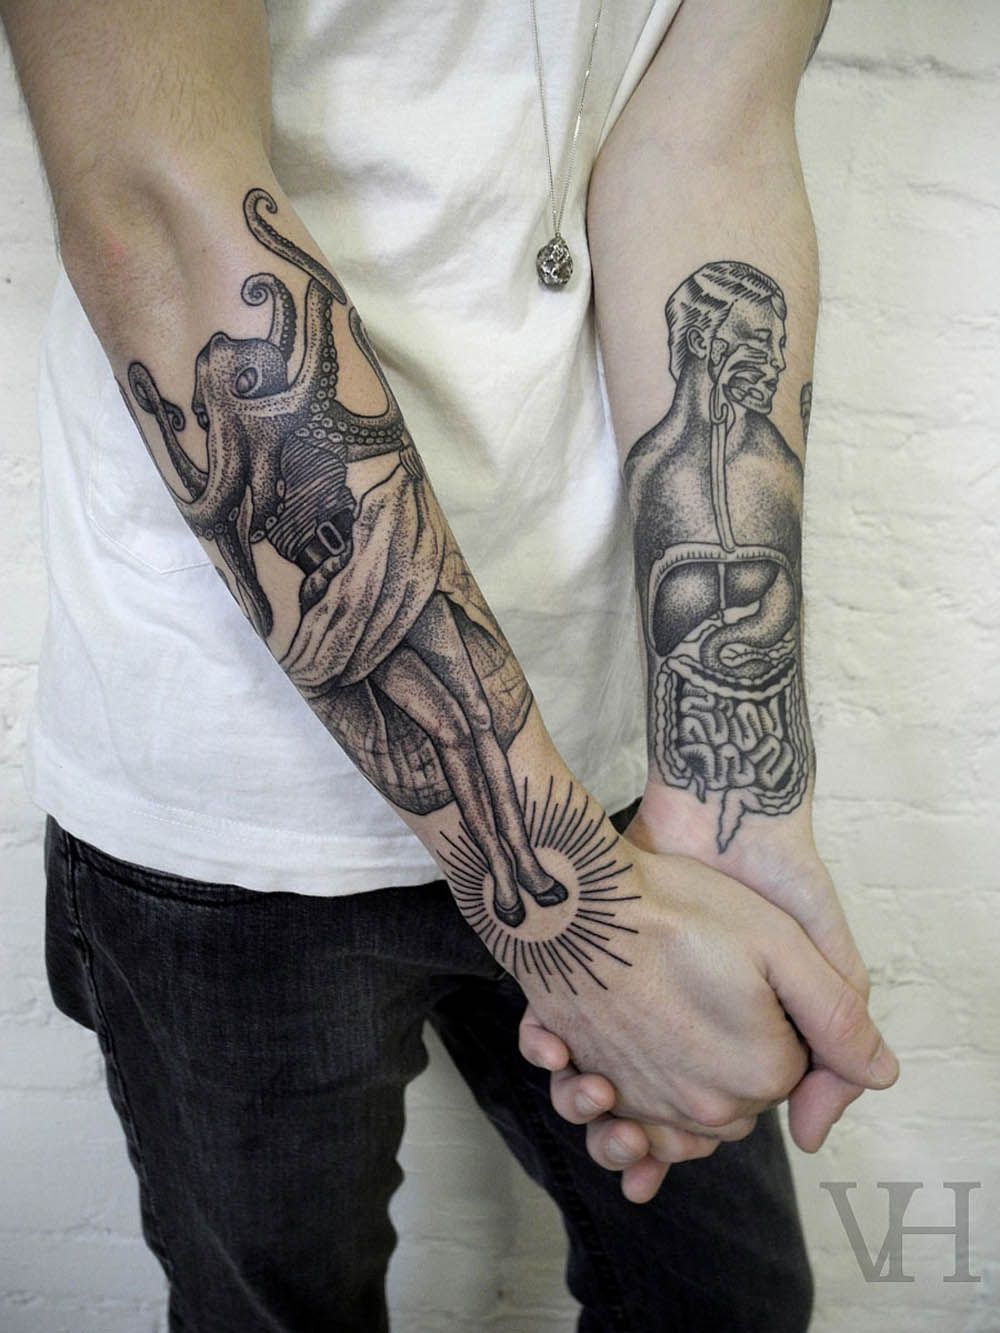 Fine Tattoo Art by Valentin Hirsch | Points of Reference | Pinterest ...